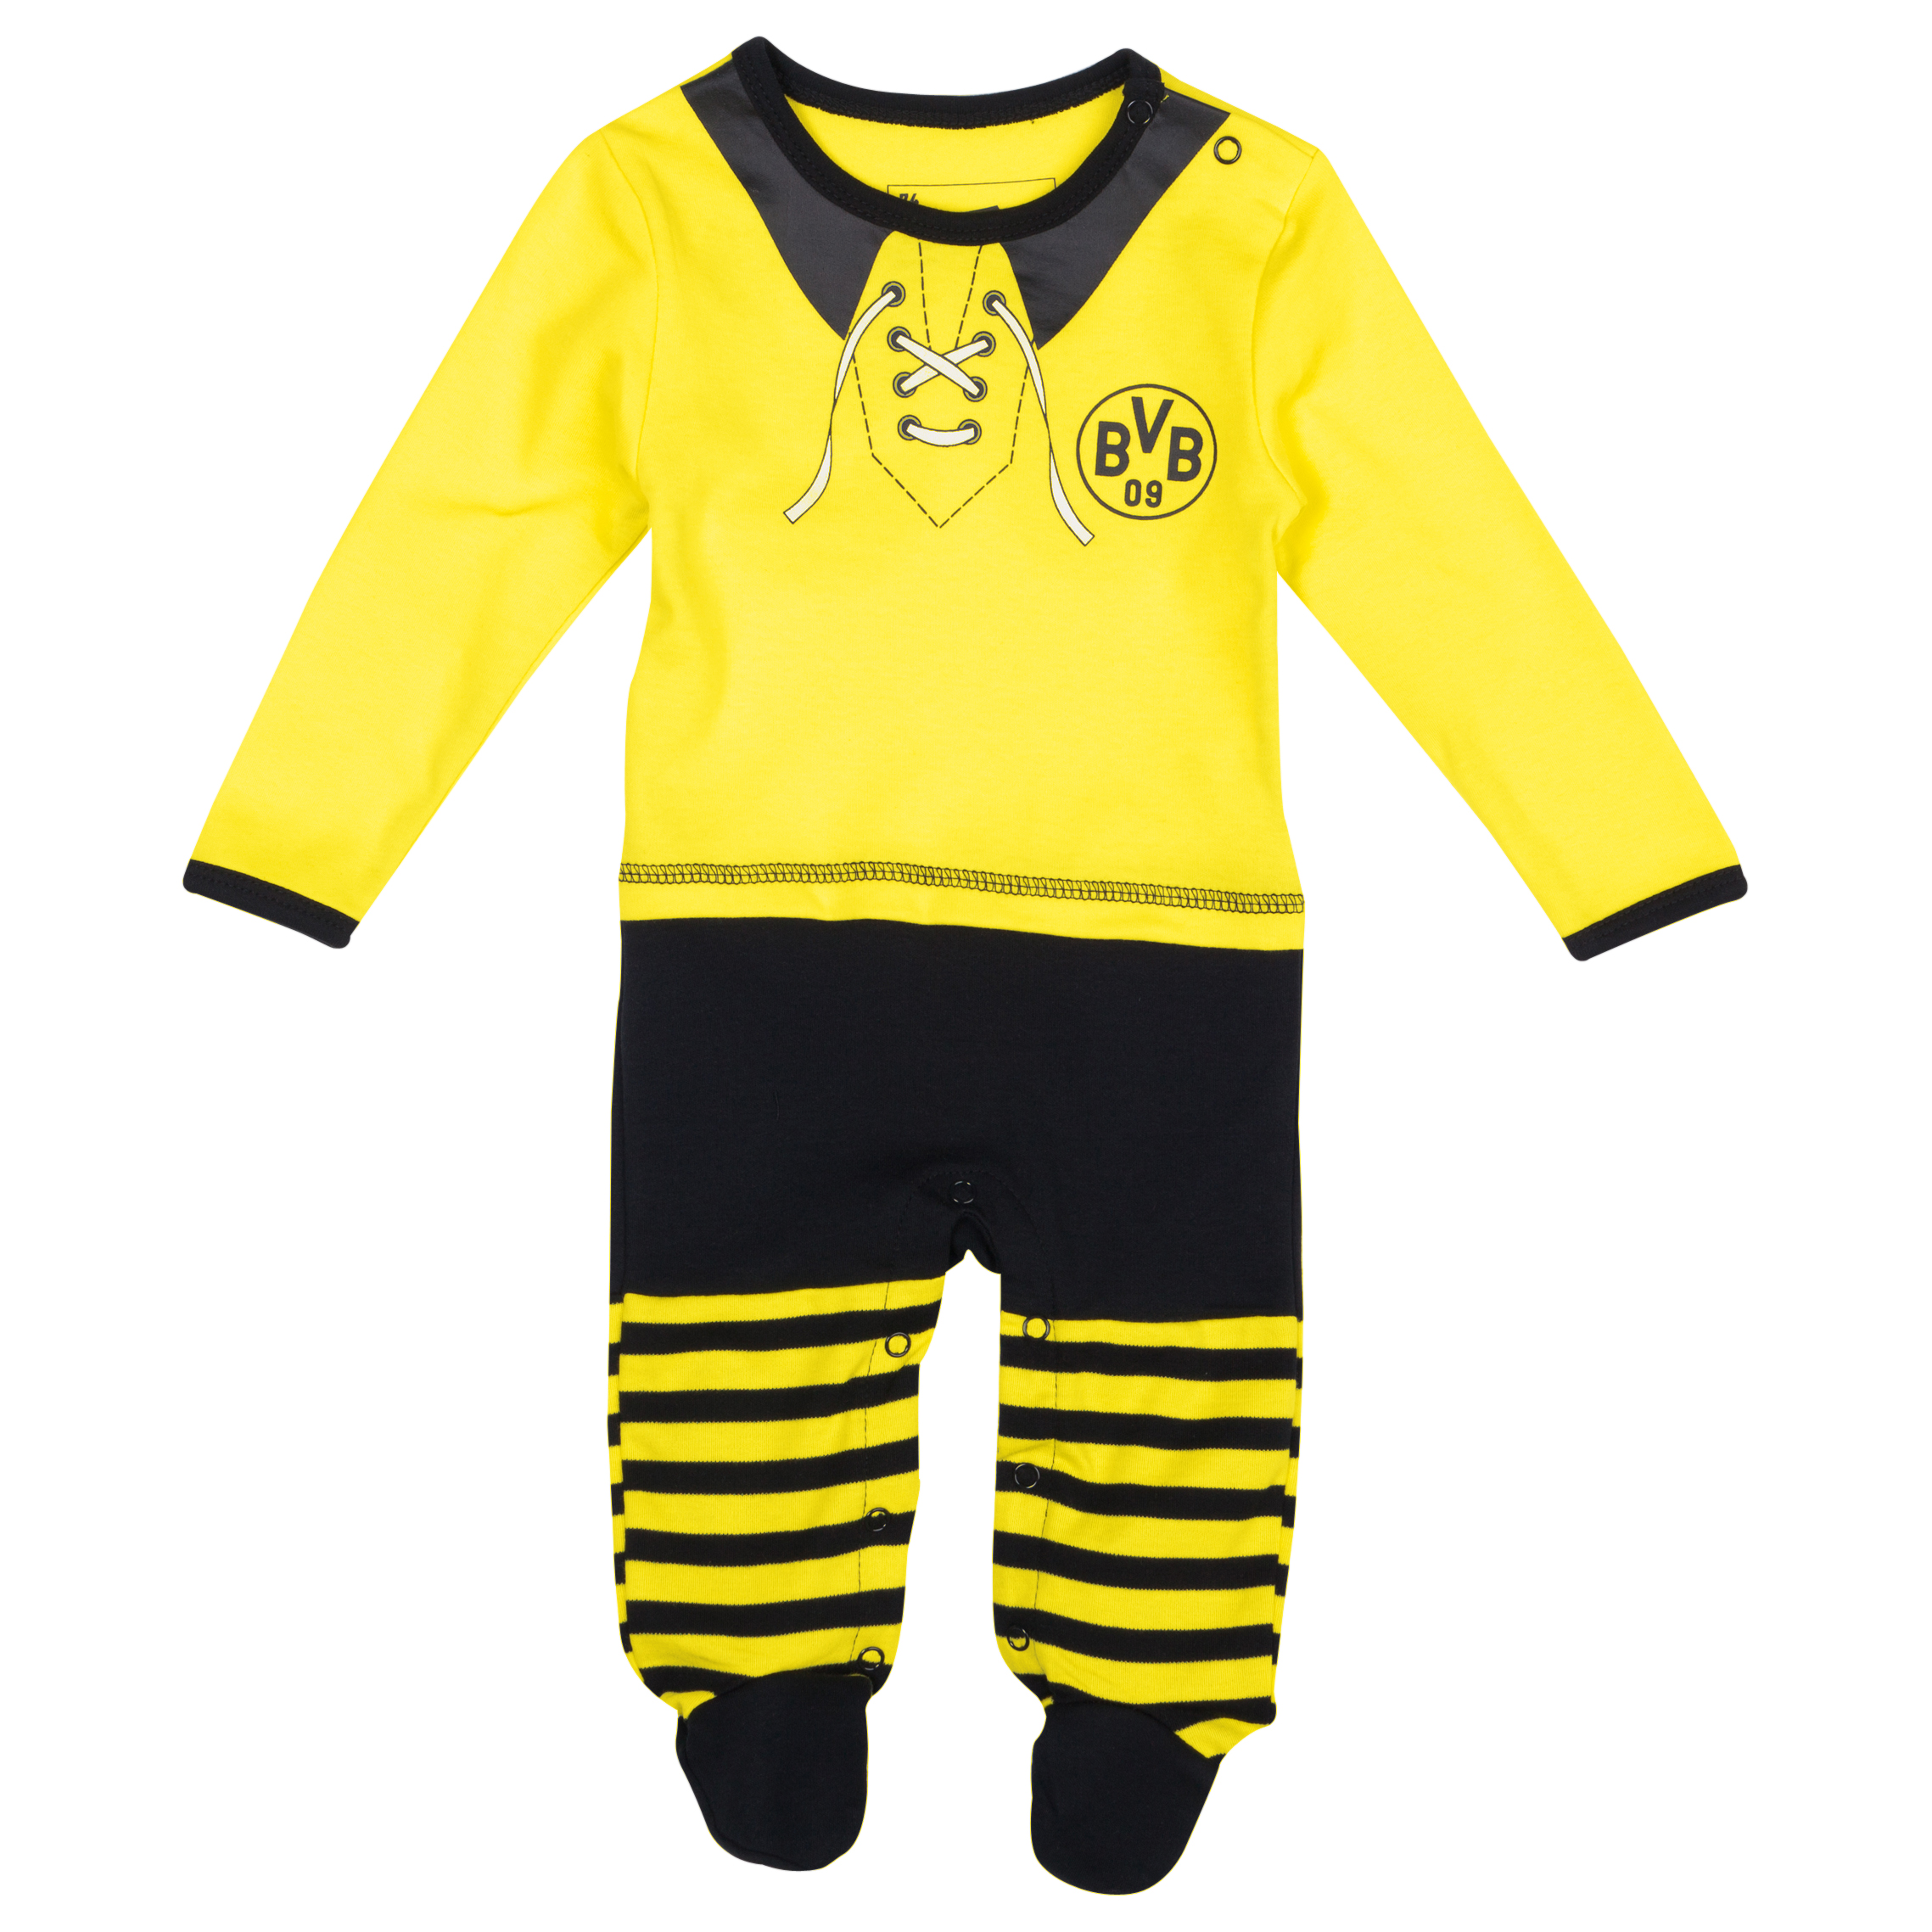 BVB Home Kit Long Sleeved Sleepsuit Baby Yellow